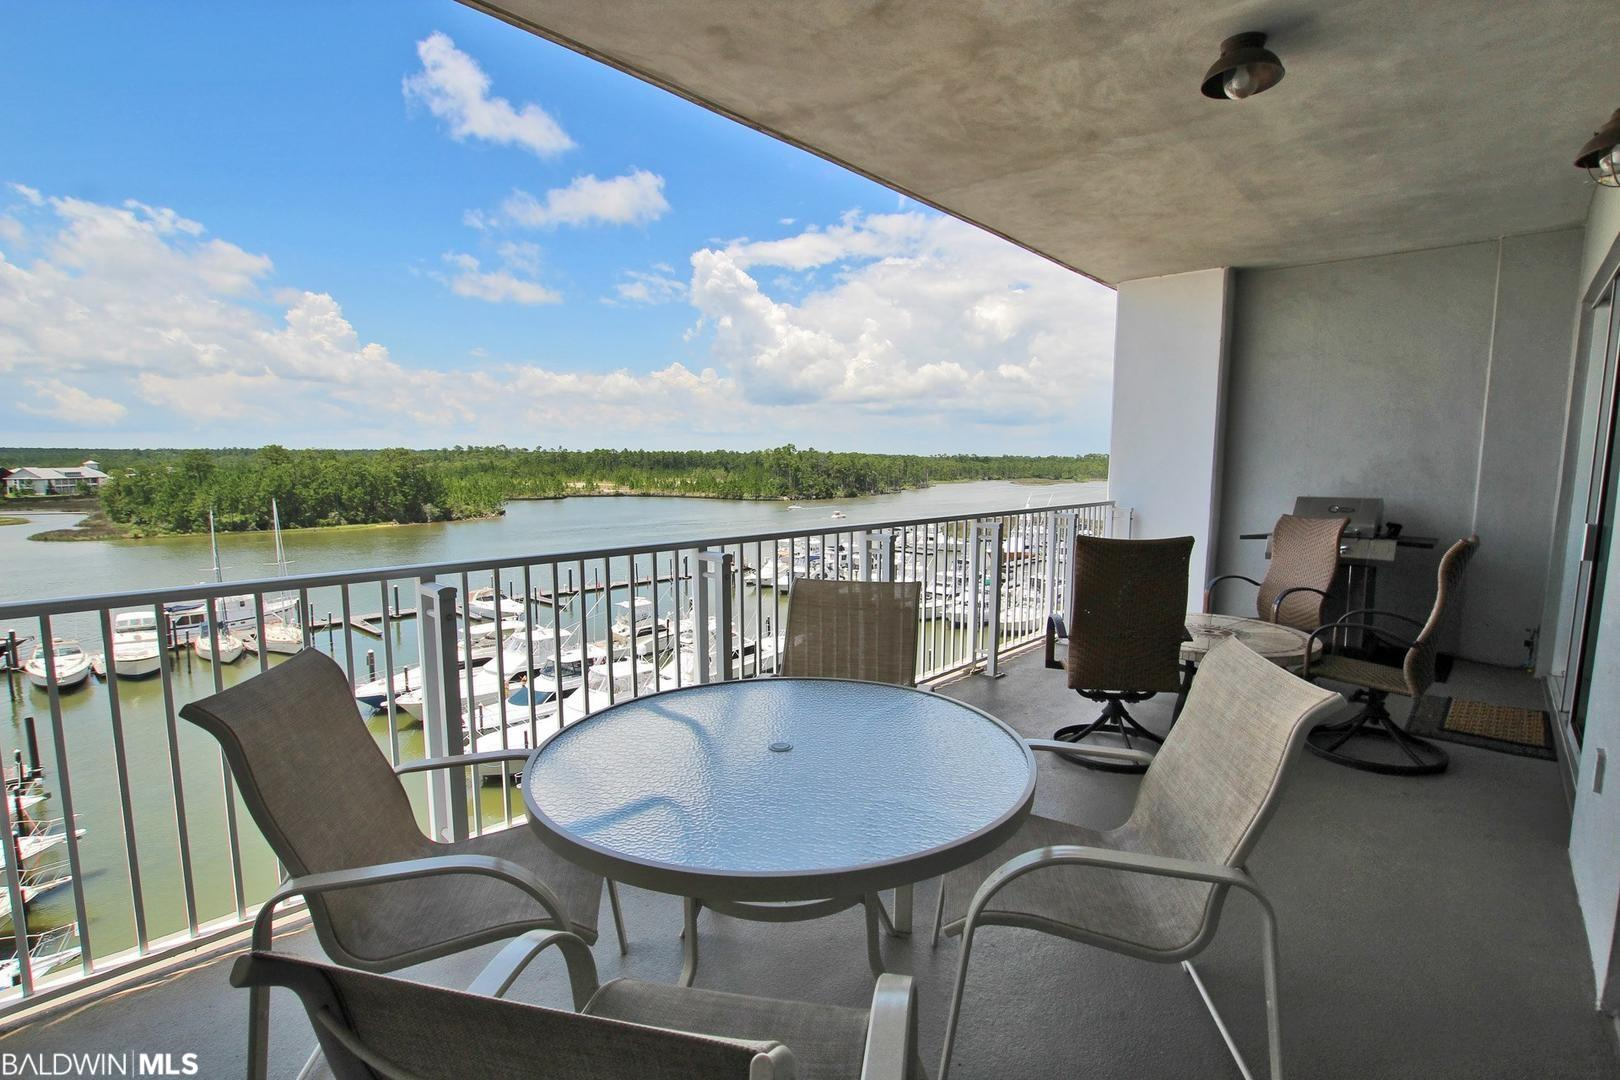 Most desired 2 bedroom 2 bath floor plan at The Wharf!!  Large rectangular balcony with 2 seating areas and natural gas grille.  Located on the East end of complex with beautiful views of the IntraCoastal Waterway. This 5th floor unit offers stainless steel appliances, granite countertops, and  2 large bedrooms with adjoining bathrooms. Enjoy the Oasis Waterpark during the day and Wharf Mainstreet at night full of shops, dining, and entertainment.  Excellent Rental history.  2019 rentals $32,862.45 New Refrigerator 2016. New Washer/Dryer 2016. New Gas Grille 2019. New 2nd Bedroom Furniture, TV Console and Living Room Chairs 2020.